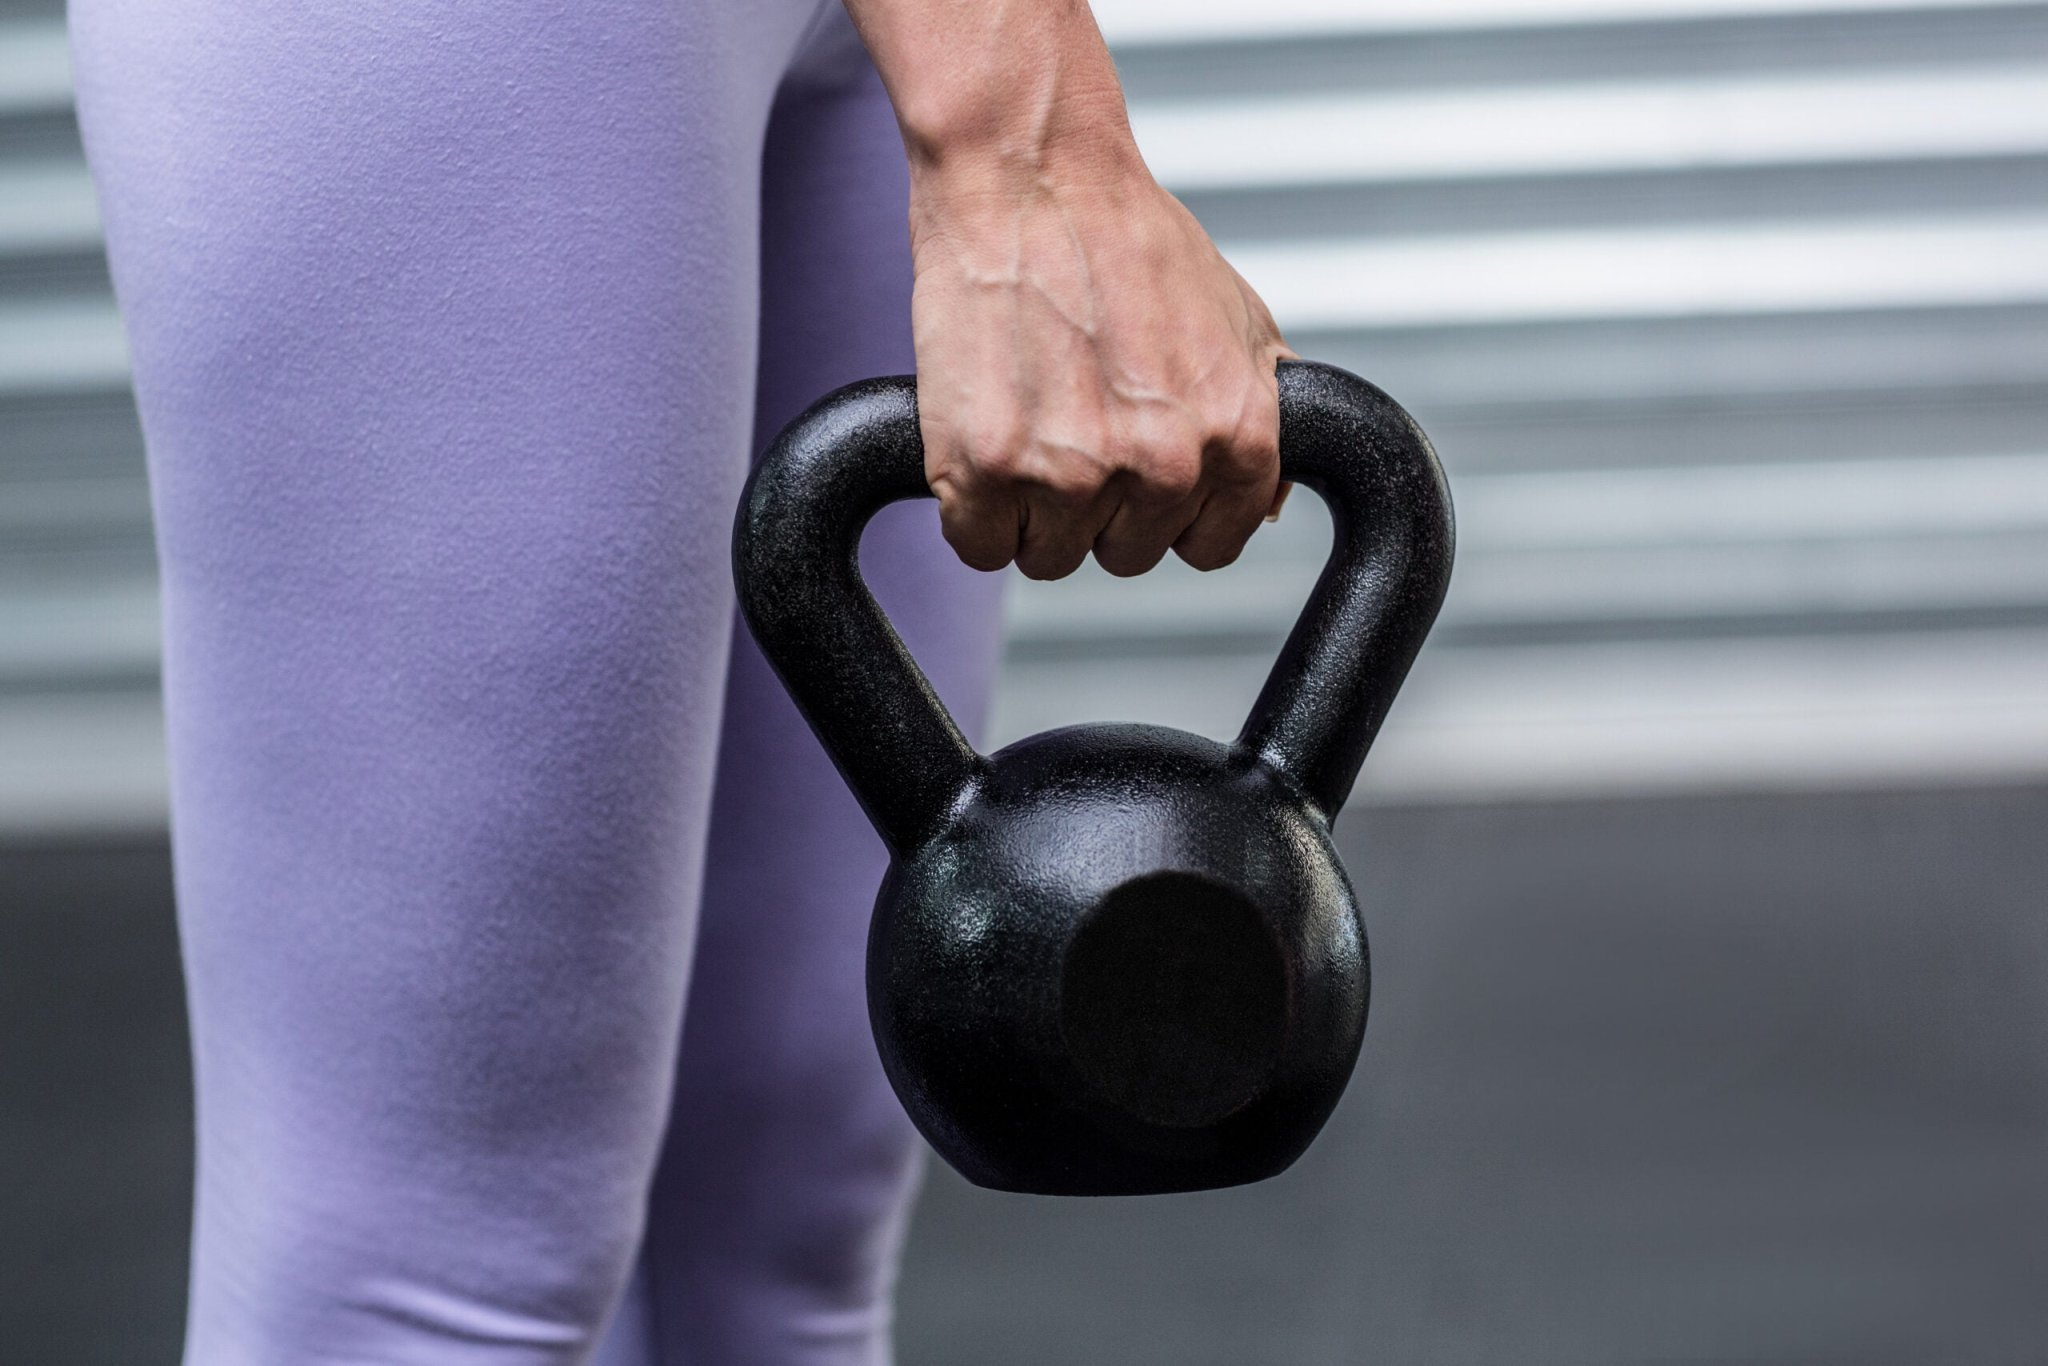 The three strength exercises everyone should do